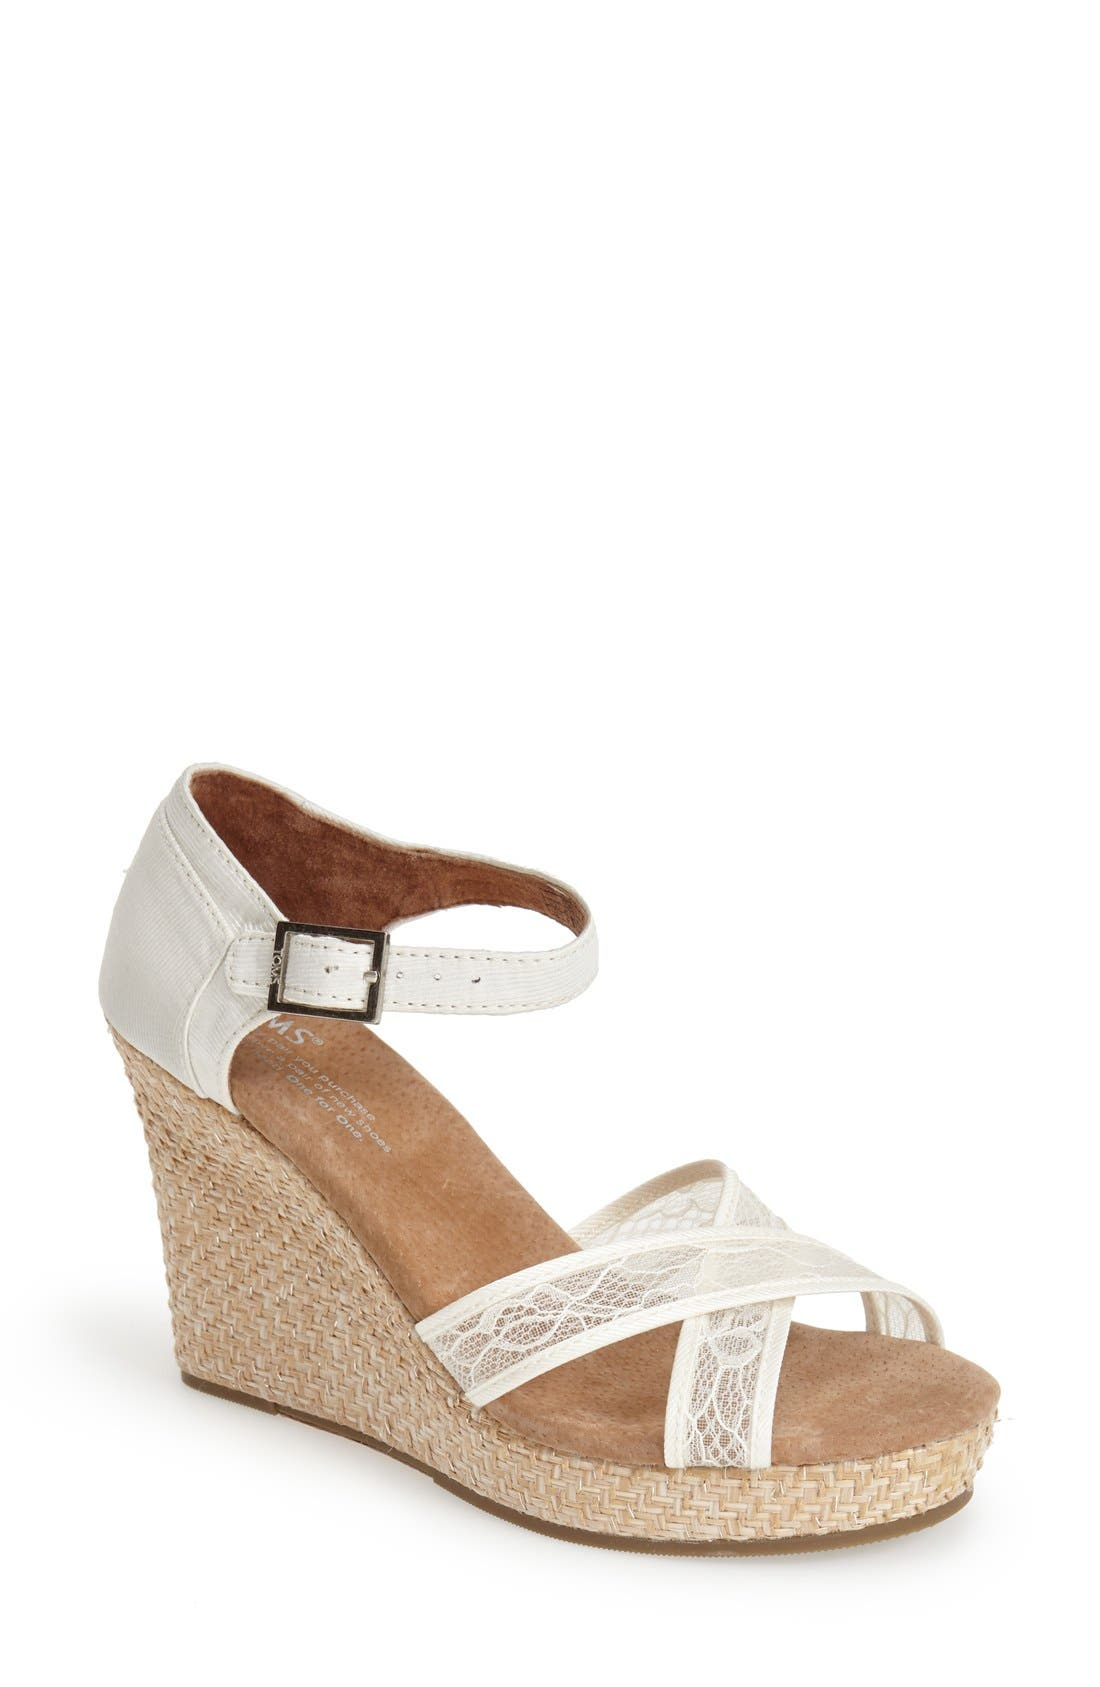 Alternate Image 1 Selected - TOMS Lace & Grosgrain Ribbon Wedge Wedding Sandal (Women)